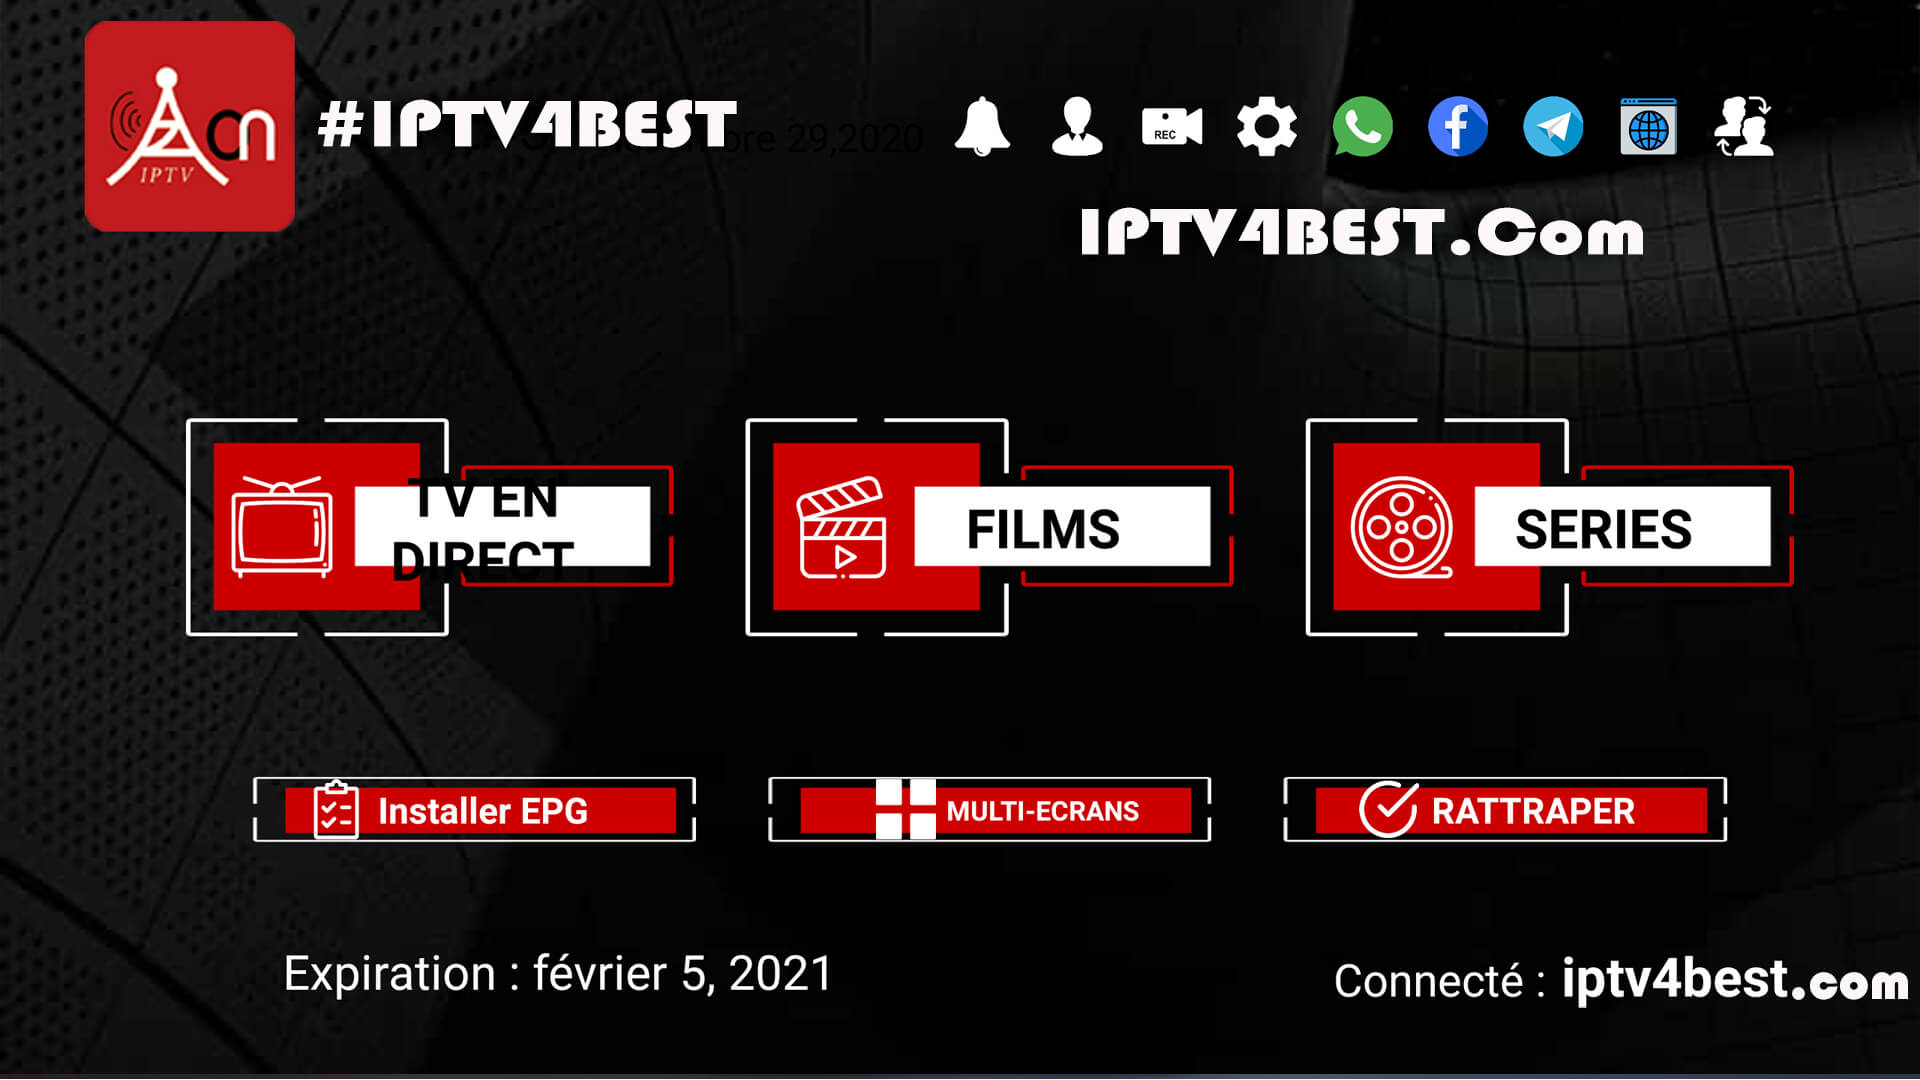 IPTvision APK + Premium Code 1 Year For Free By IPTV4BEST.Com